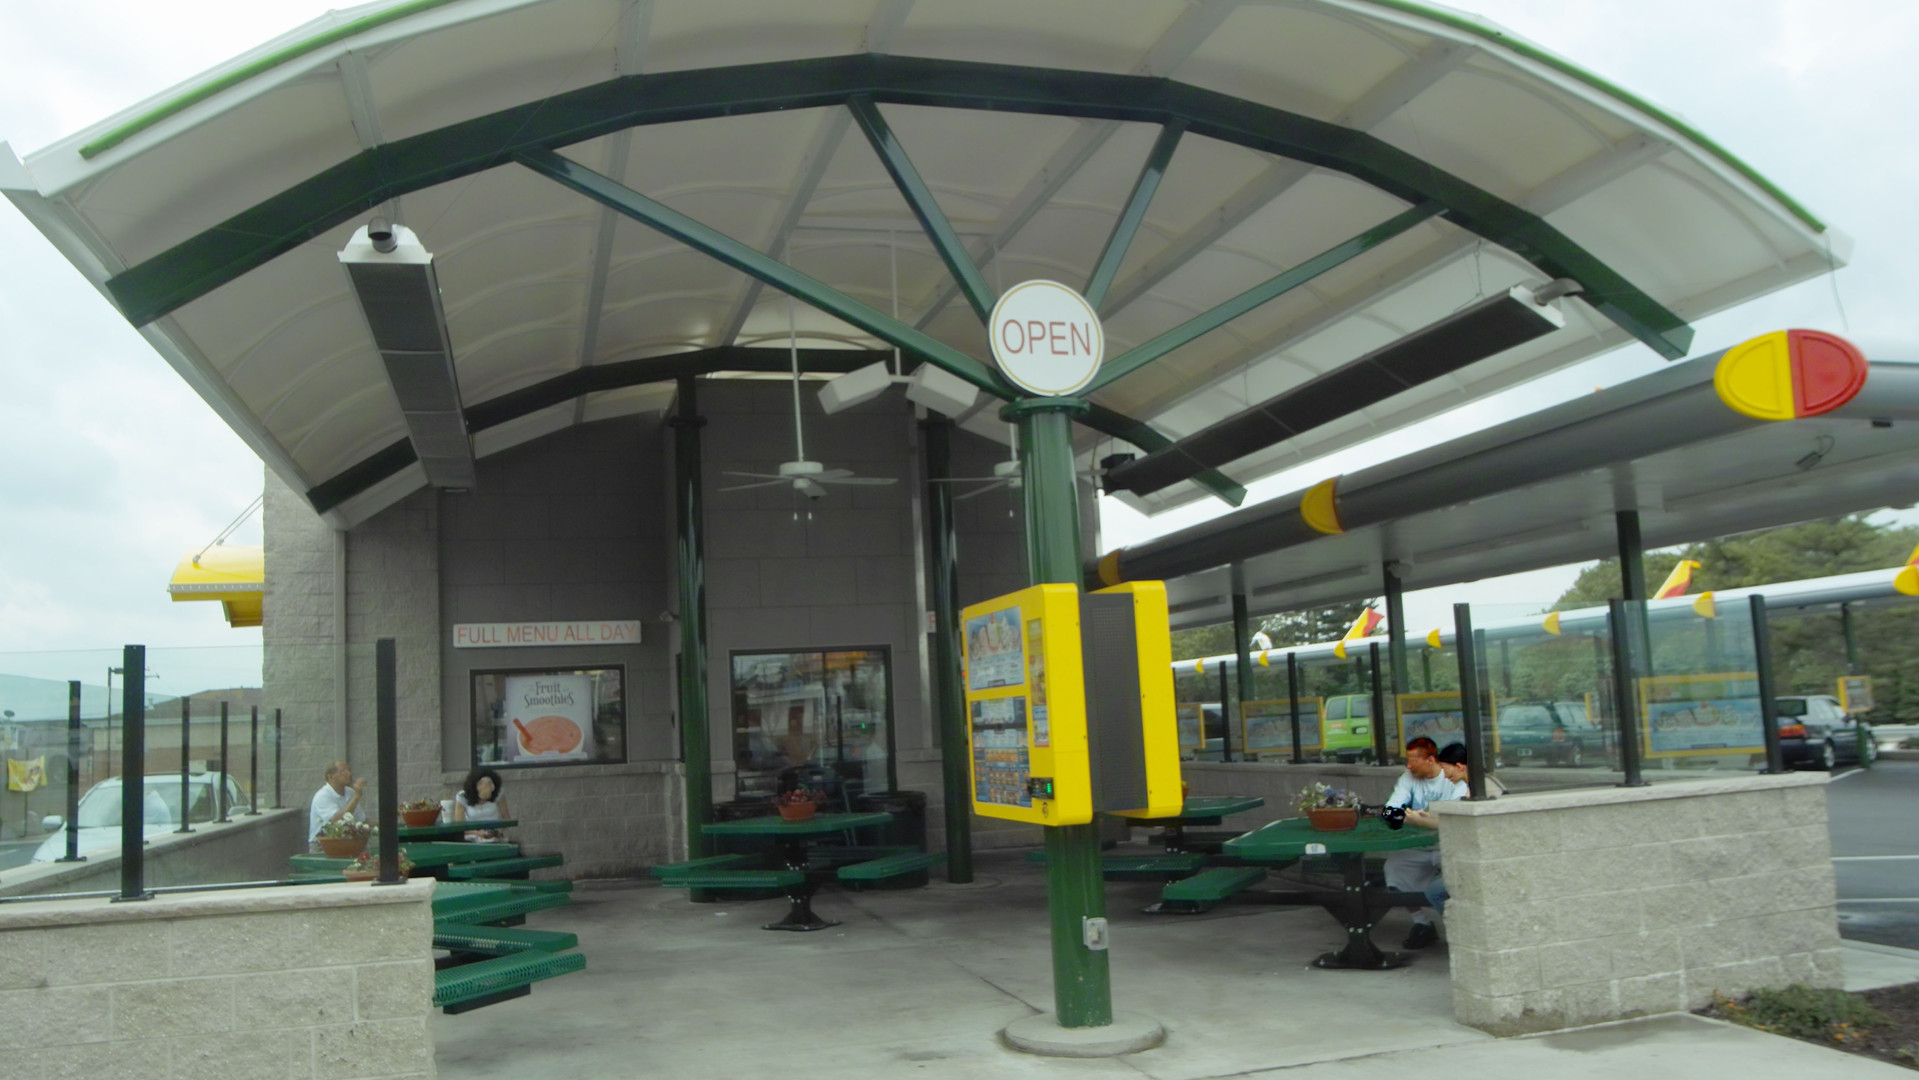 Drive Up Fast Food Restaurant Patio Area